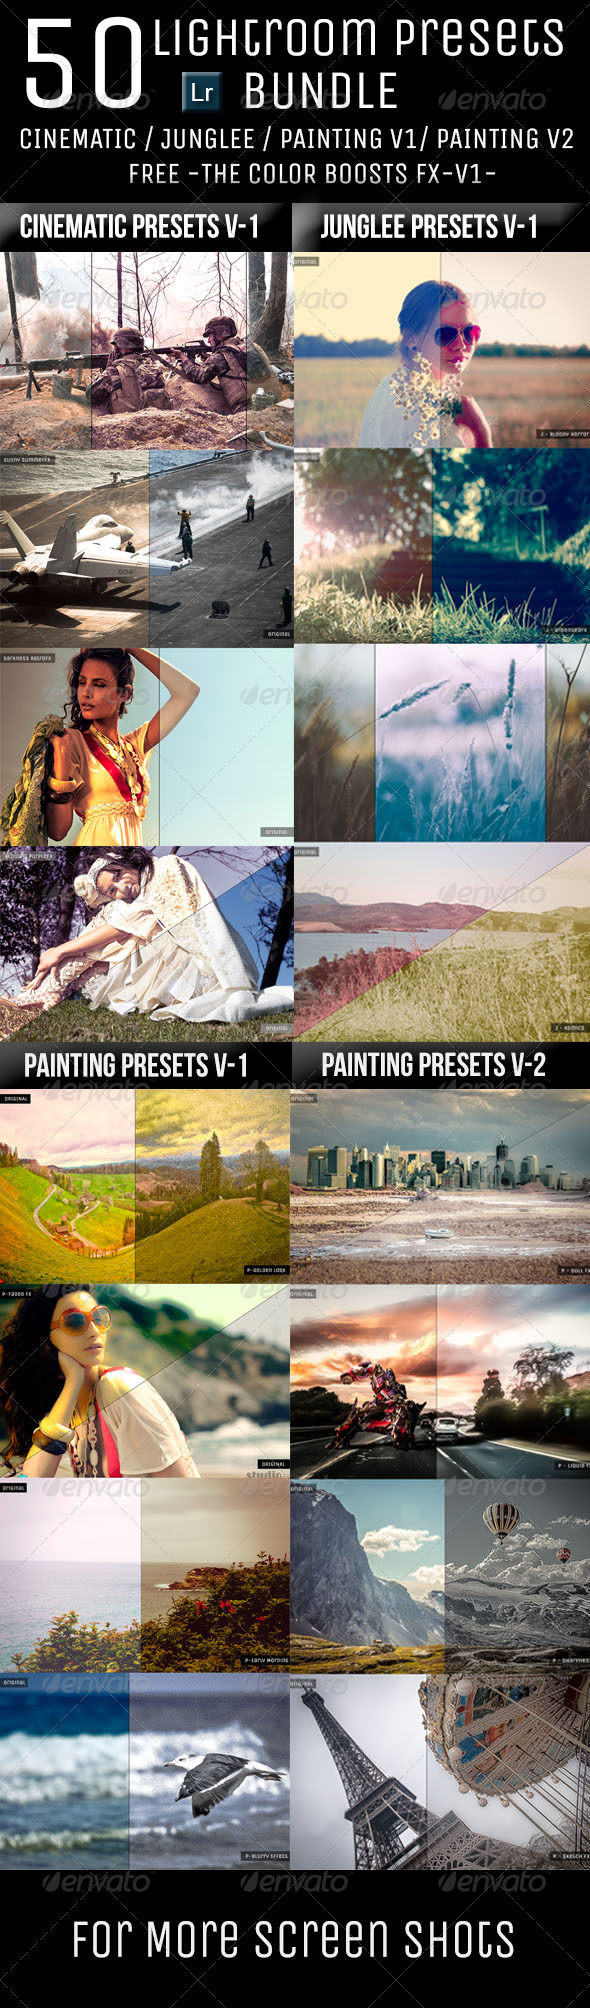 GraphicRiver 50 Lightroom Presets Bundle 6165573